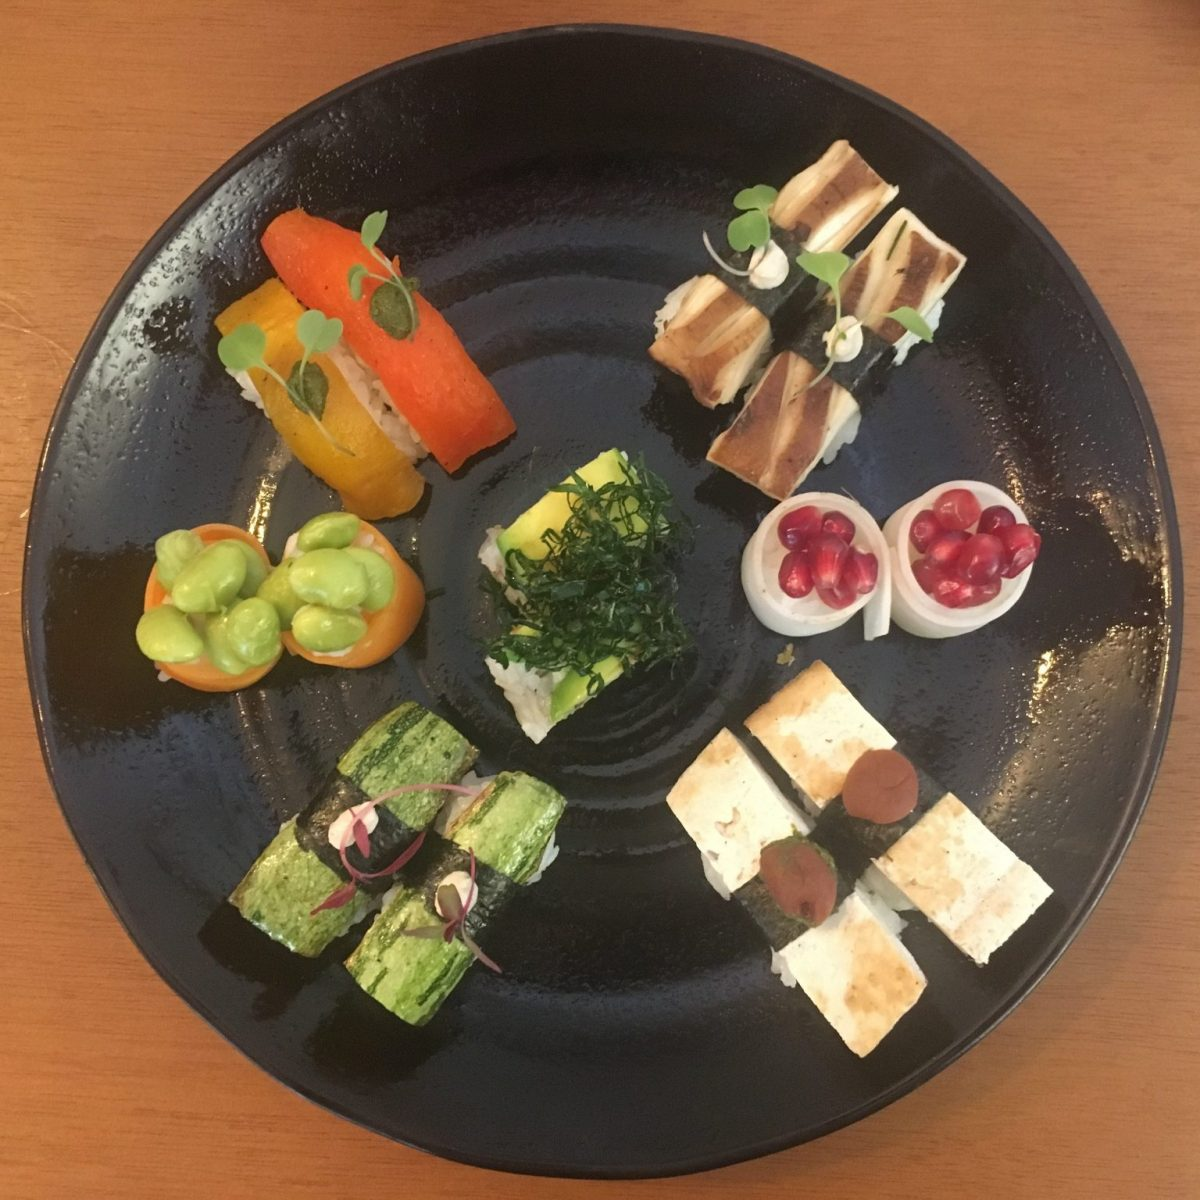 Vegan sushi platter at Sushi Mar Vegan Restaurant Sao Paulo